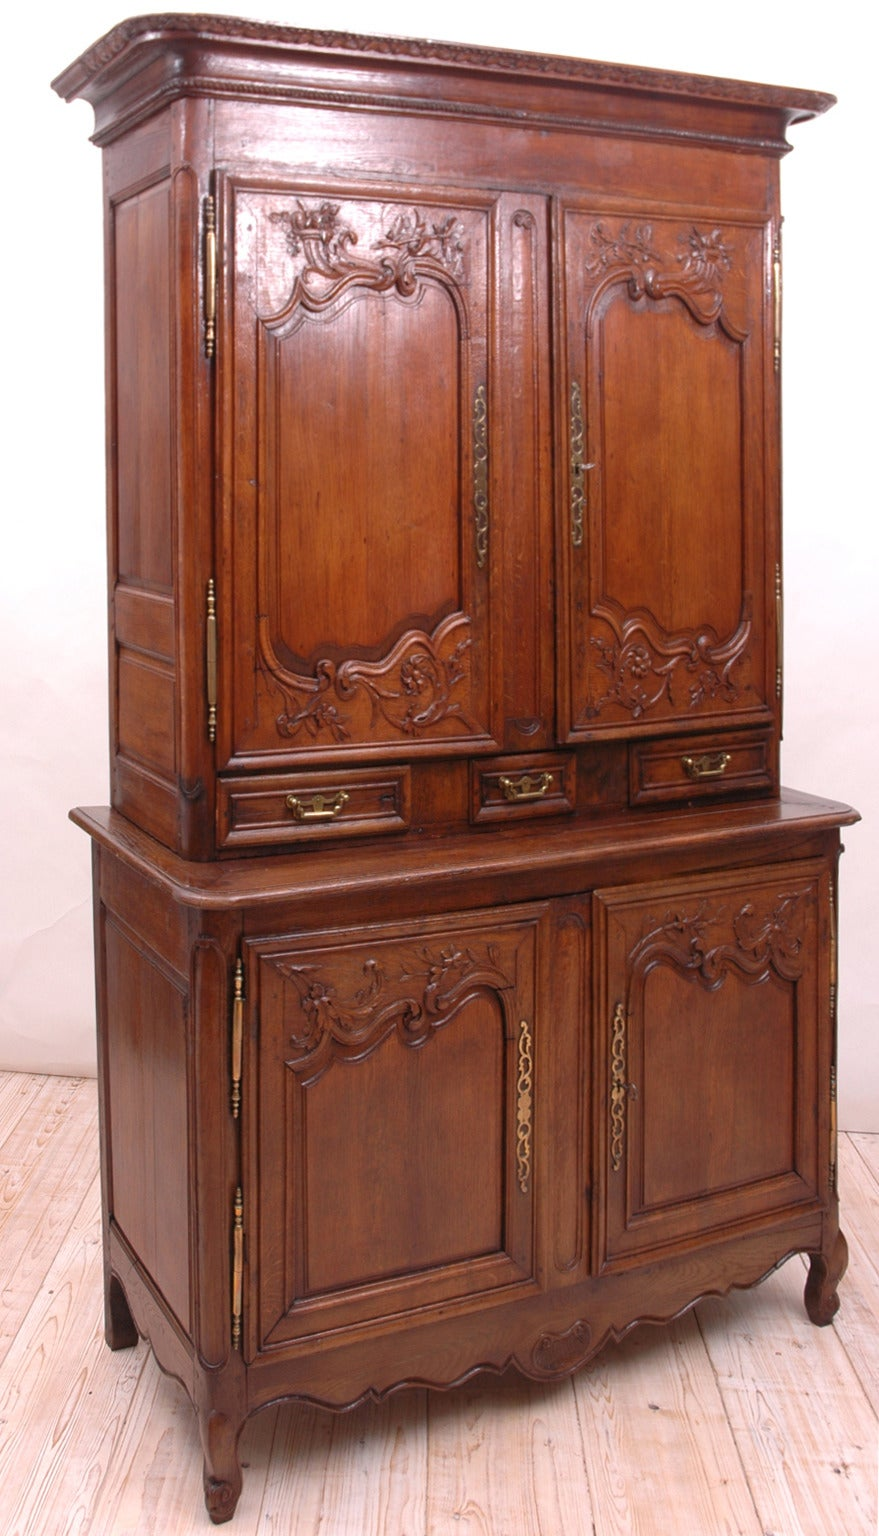 A lovely French buffet a Deux Corps (in two parts) from Normandy, France. Offers carved embellishments of cornucopias, flowers and foliage on the upper and lower cabinet doors, with carved apron and scroll feet. Original brass hinges, key escutcheon